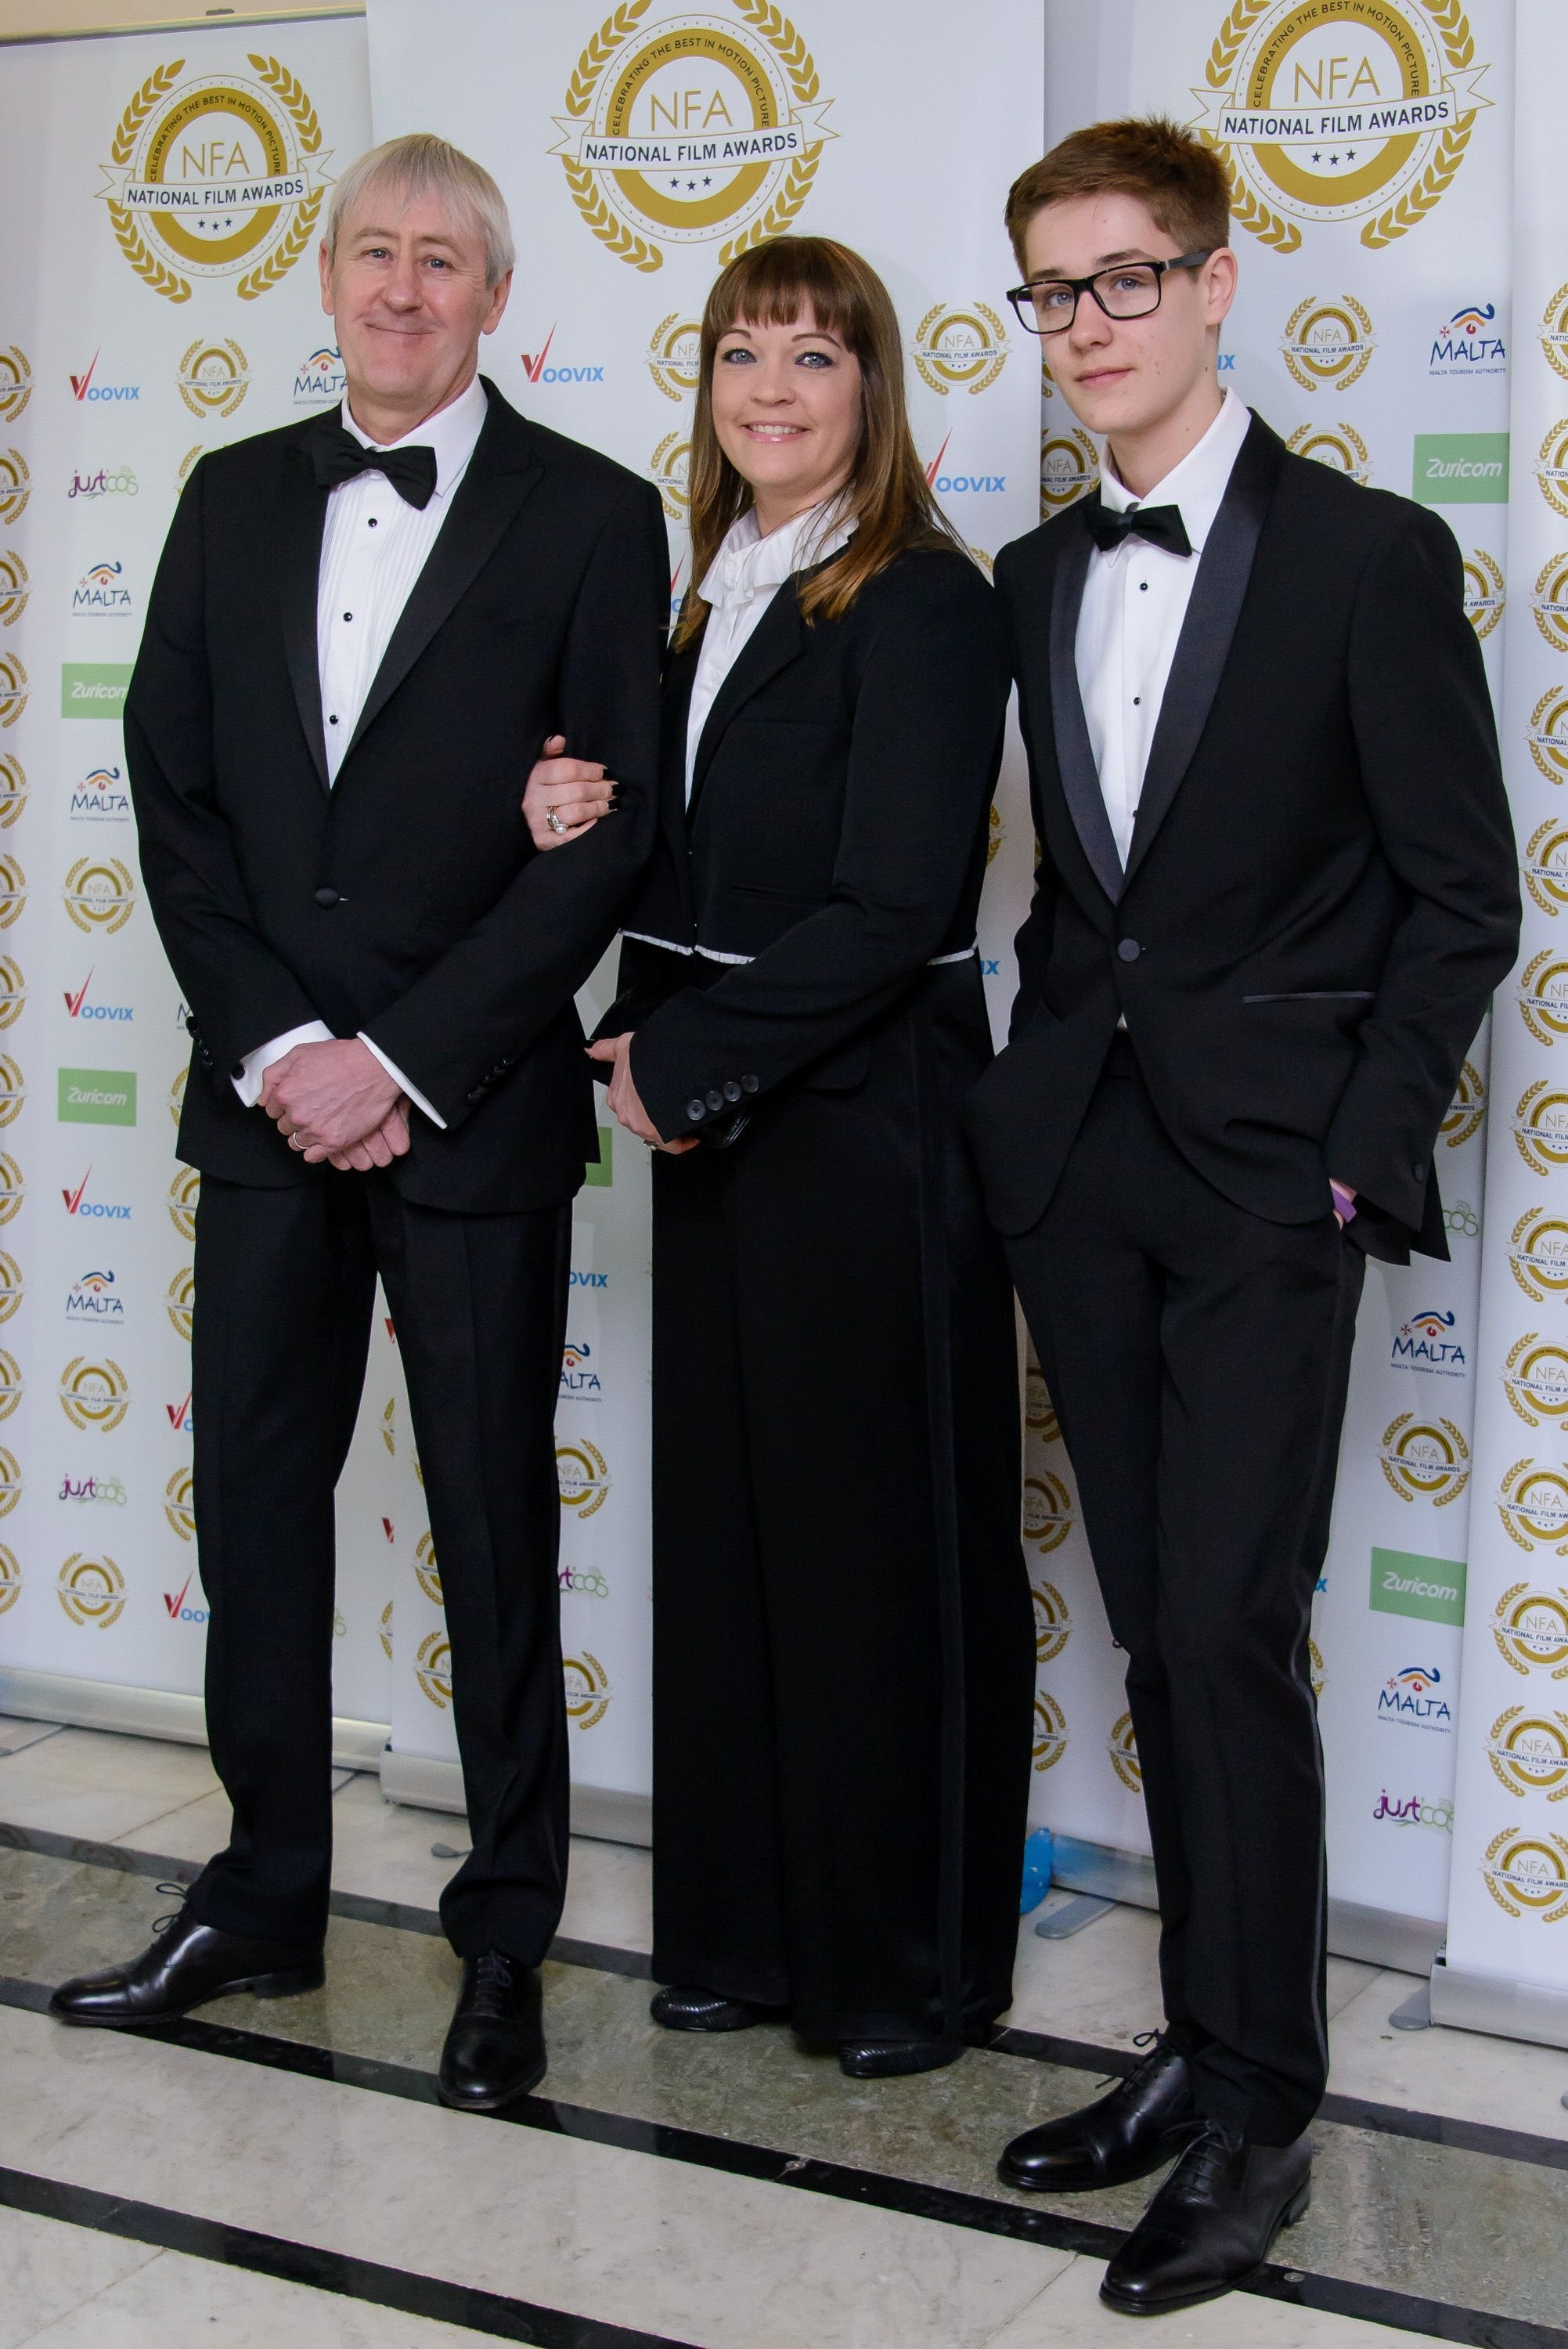 Nicholas Lyndhurst, Lucy Smith, and Archie Lyndhurst at the National Film Awards at Porchester Hall on March 29, 2017, in London, United Kingdom | Photo: Joe Maher/FilmMagic/Getty Images